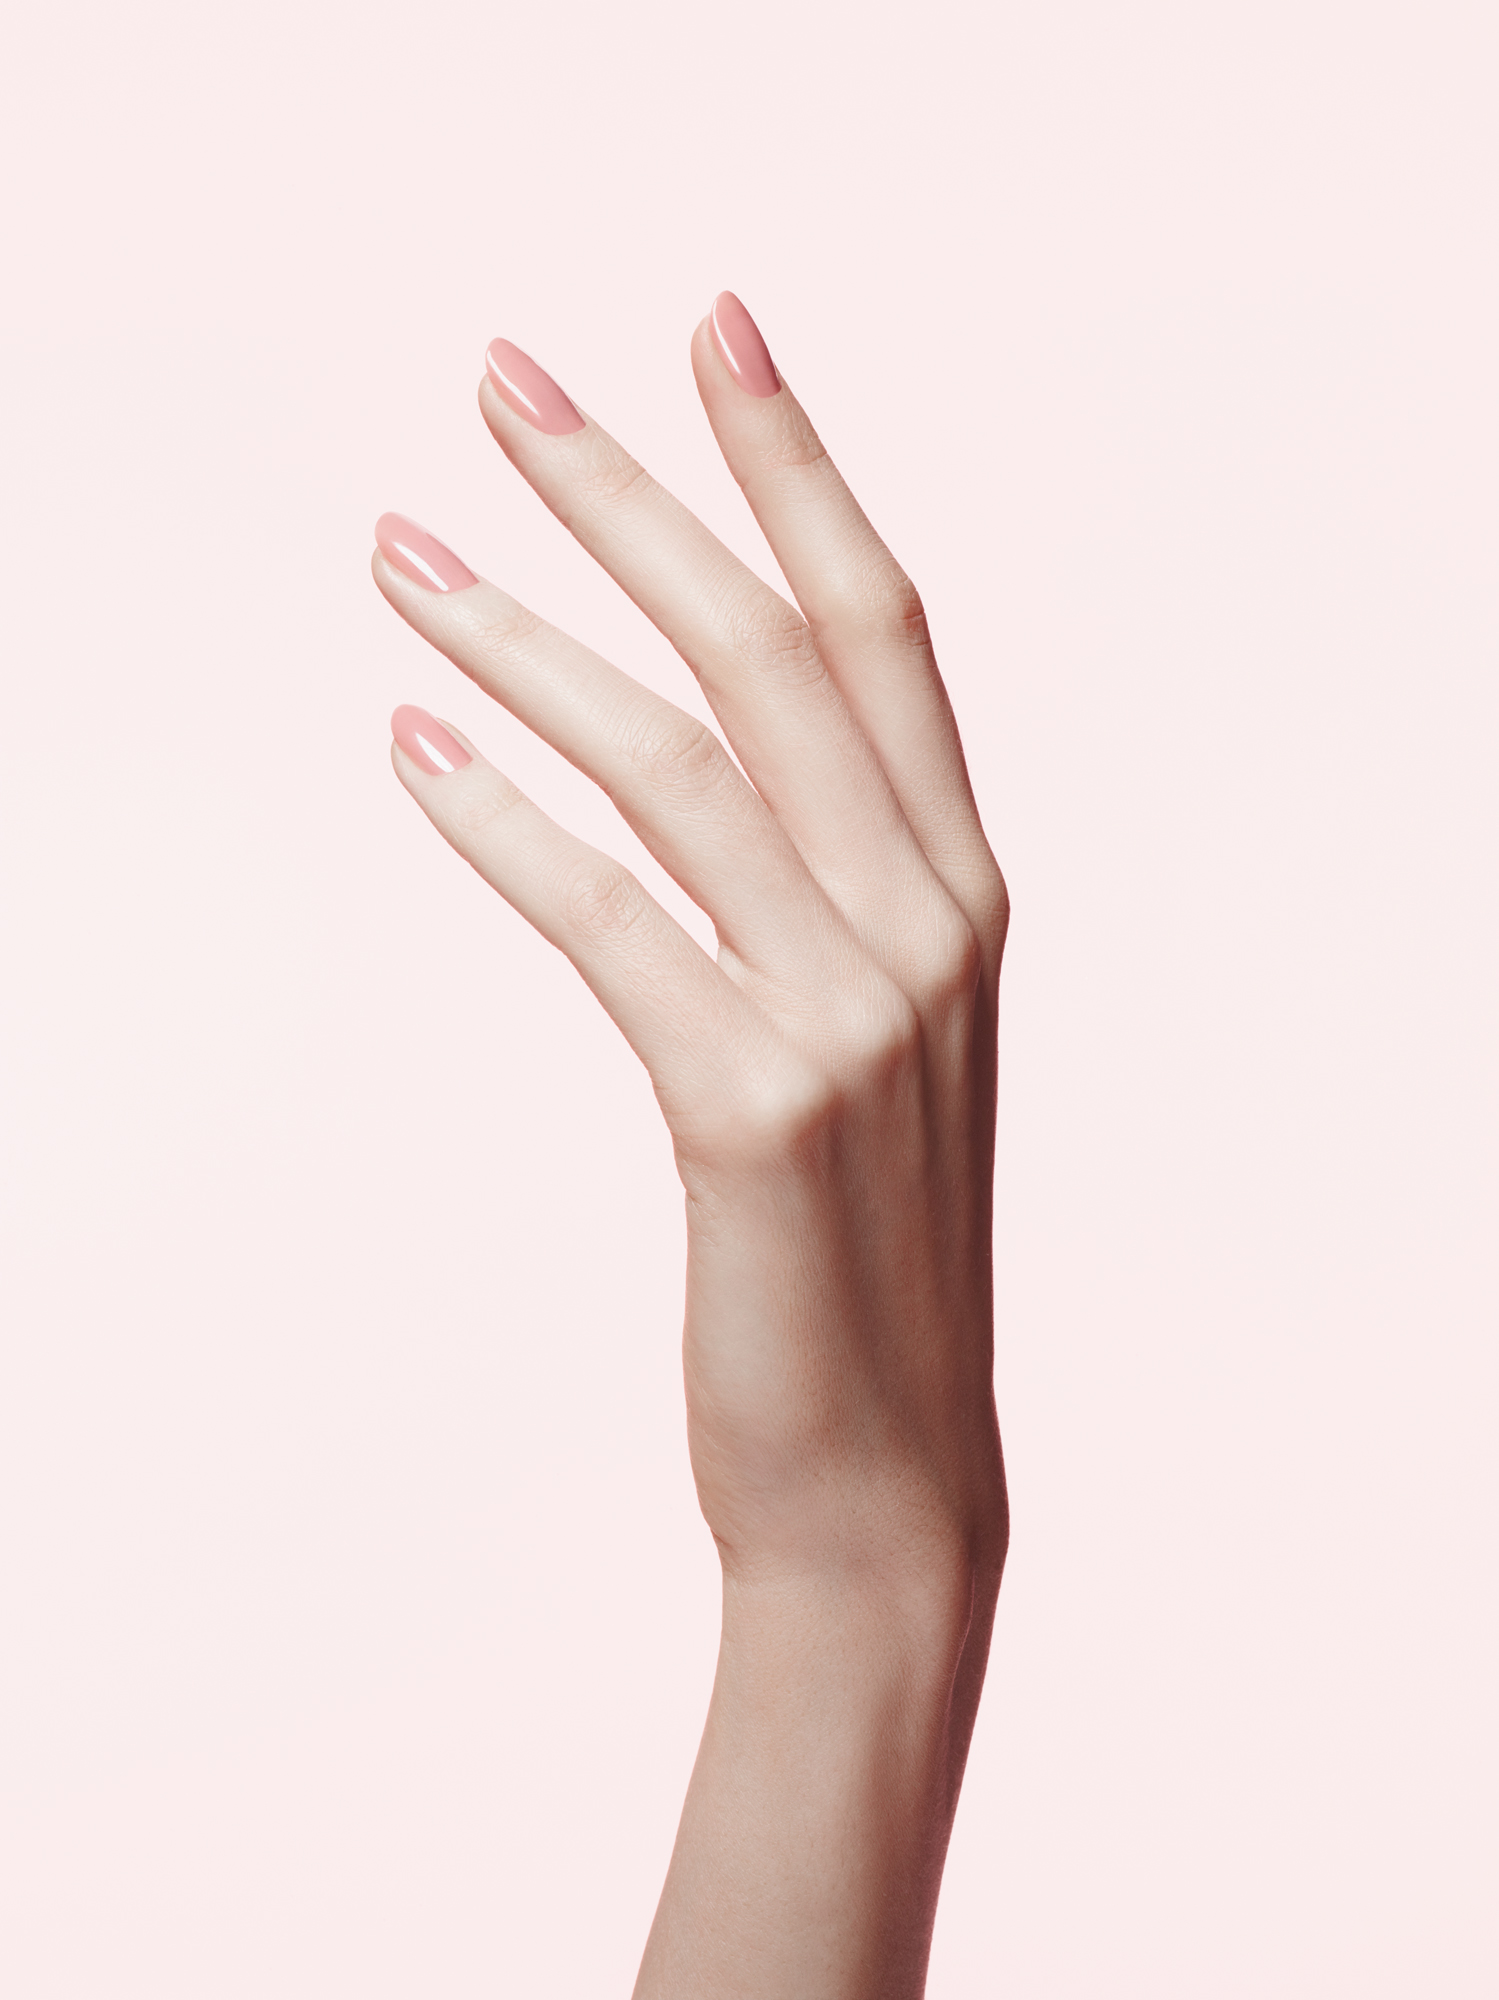 Free Manicure Beauty Hands Makeover: 5 Beauty Skills Every Woman Must Master